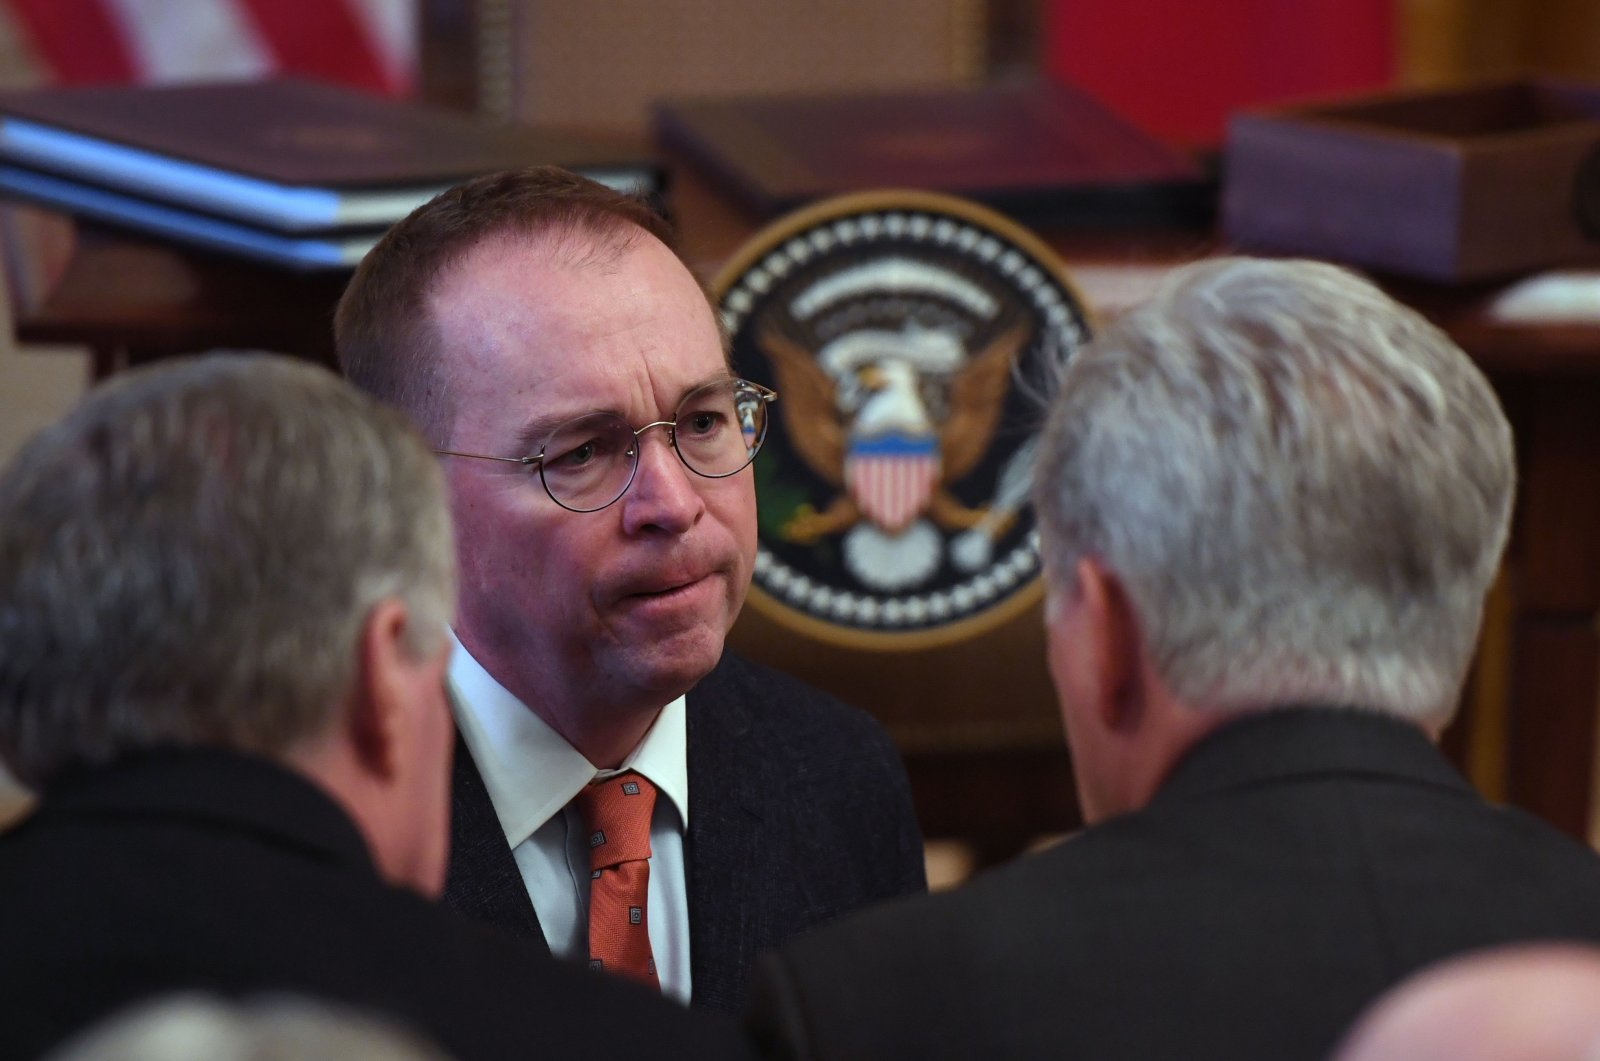 White House Director of the Office of Management and Budget Mick Mulvaney arrives for the signing of a trade agreement with the U.S. and China in the East Room of the White House in Washington, D.C., U.S., Jan. 15, 2020. (AFP Photo)